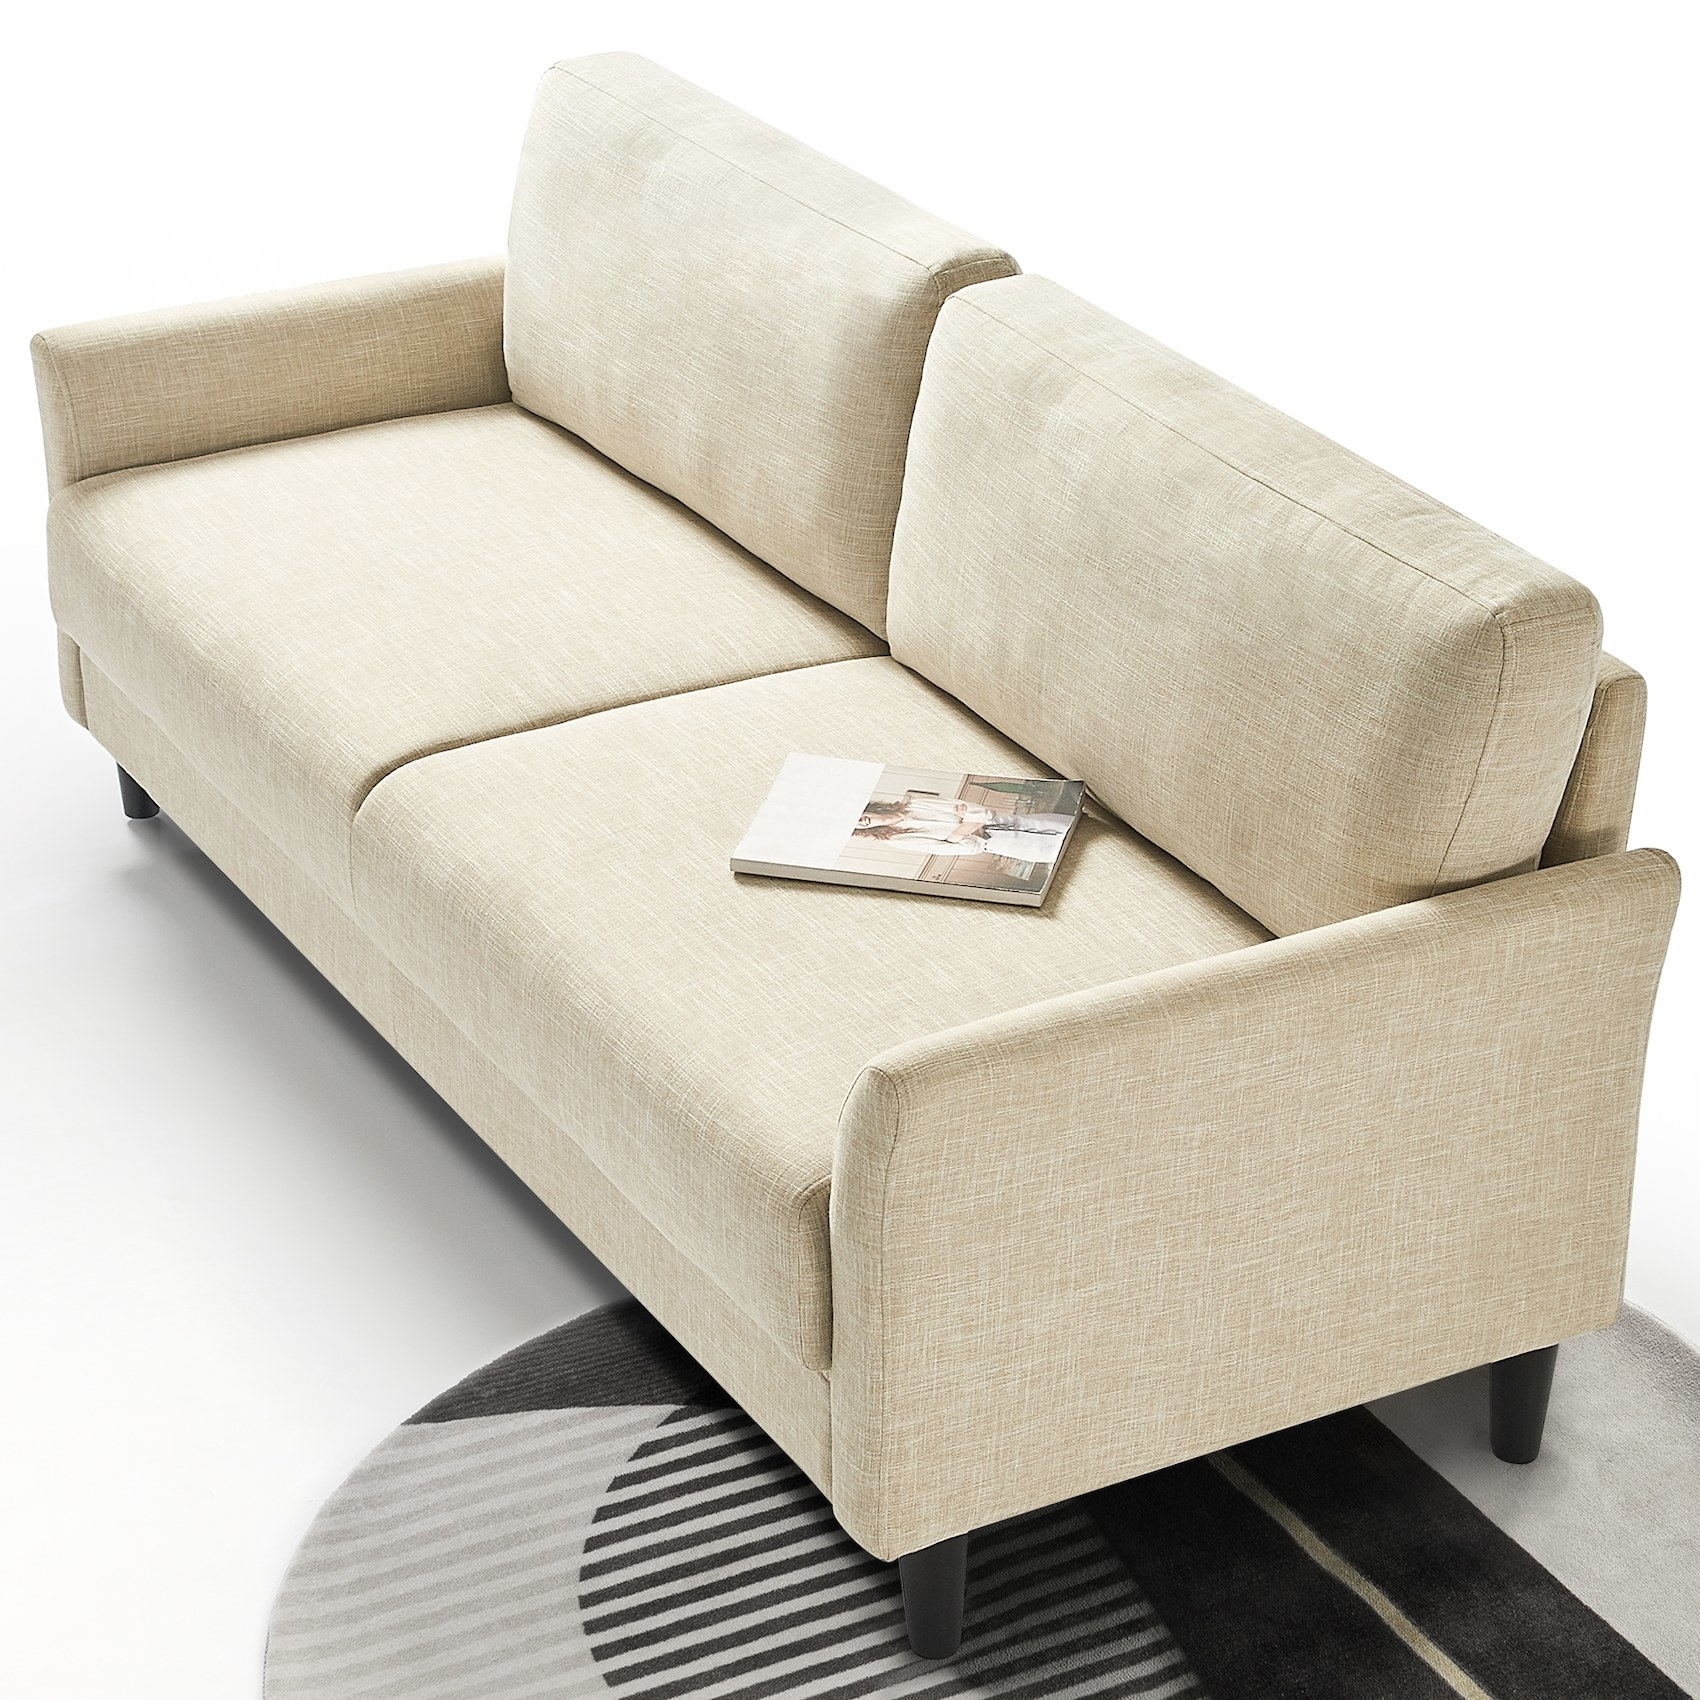 The sofa with flared arms and four cushions in a living room